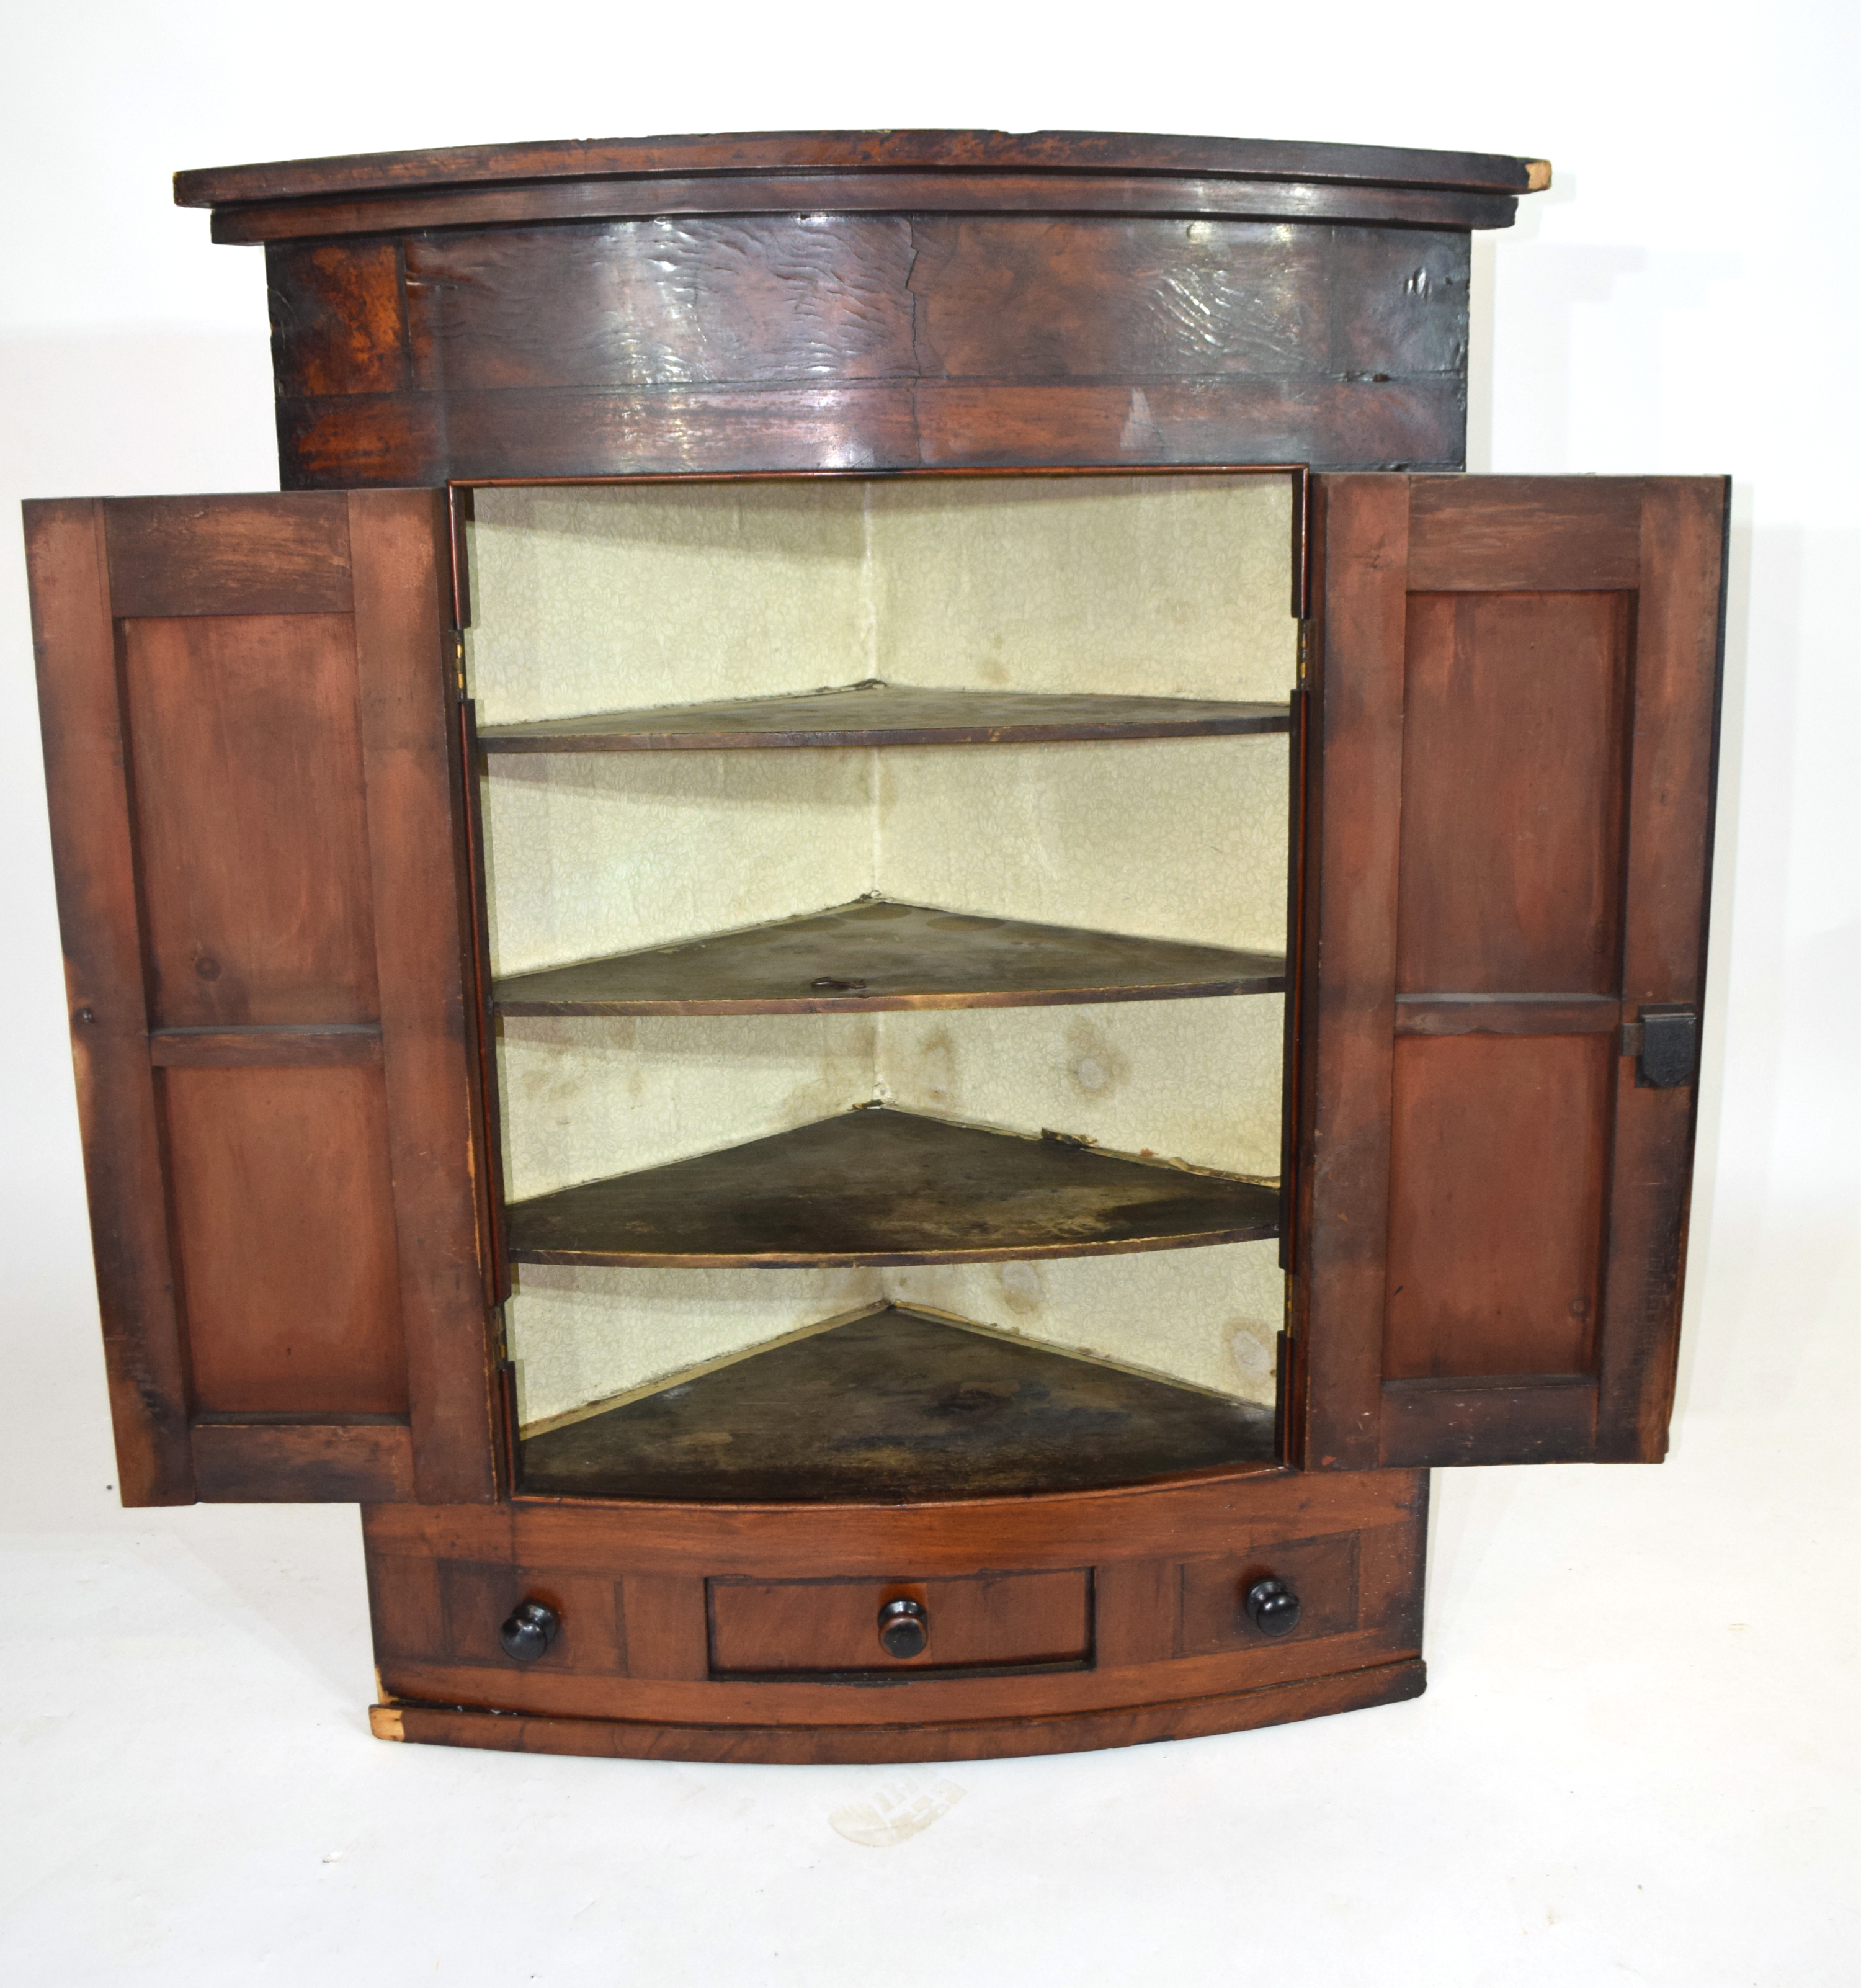 19th century mahogany corner cabinet of large proportions, the bow front body with two panelled - Image 2 of 4